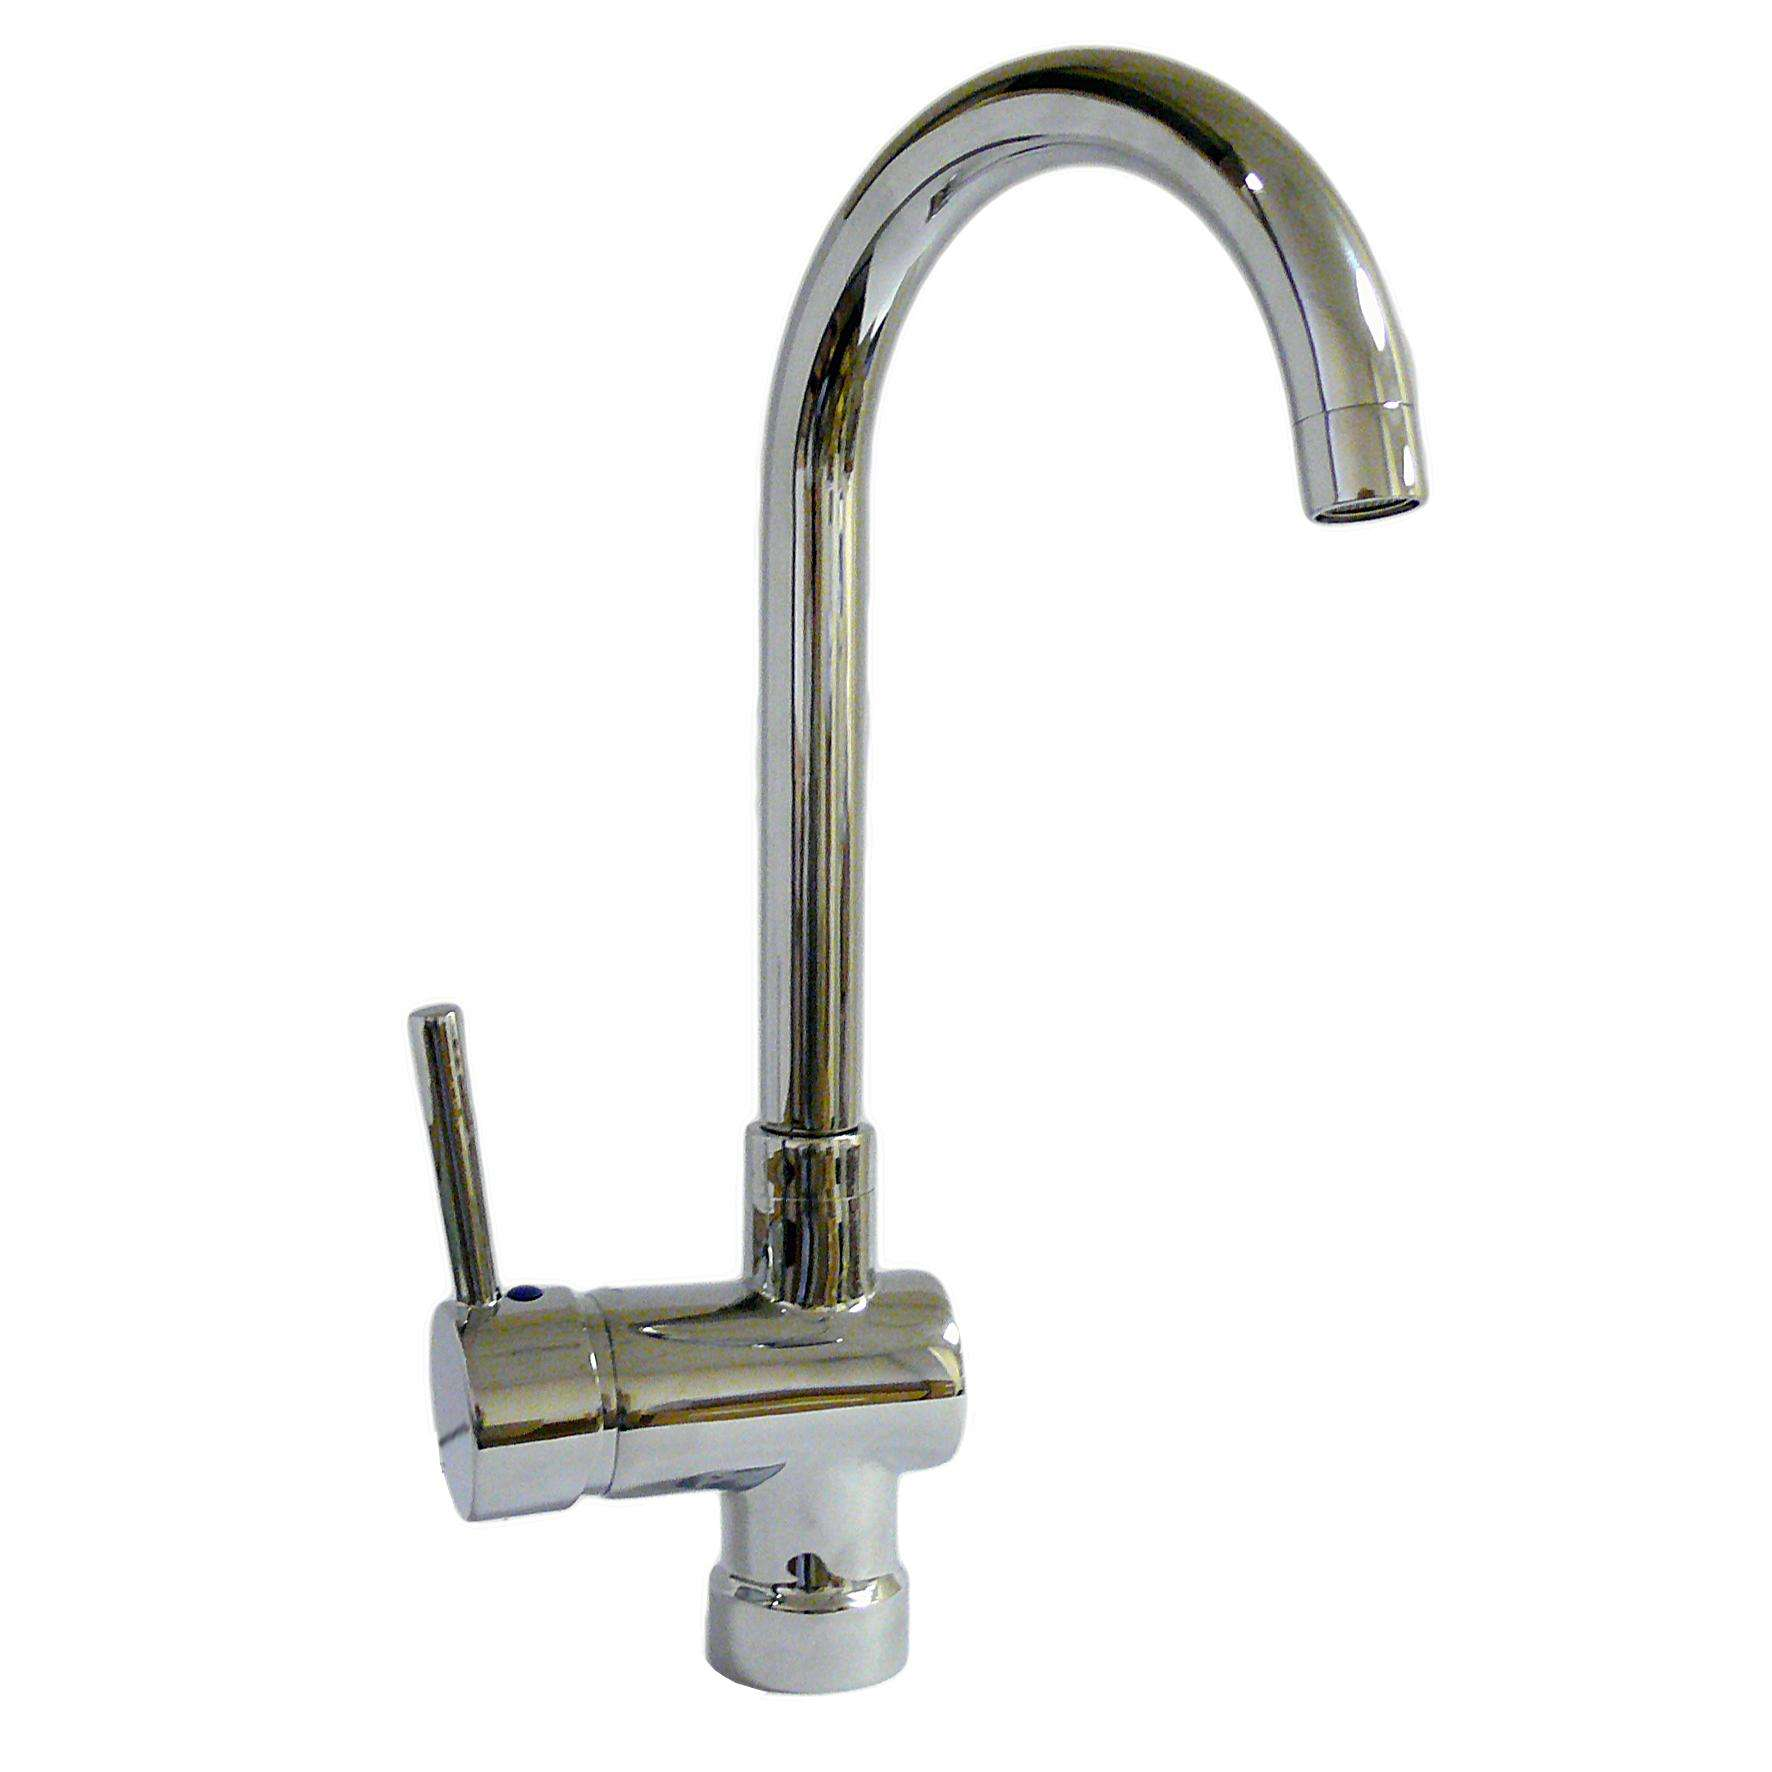 Nicosia Monoblock Kitchen Mixer Tap Themobilehomeshop ...